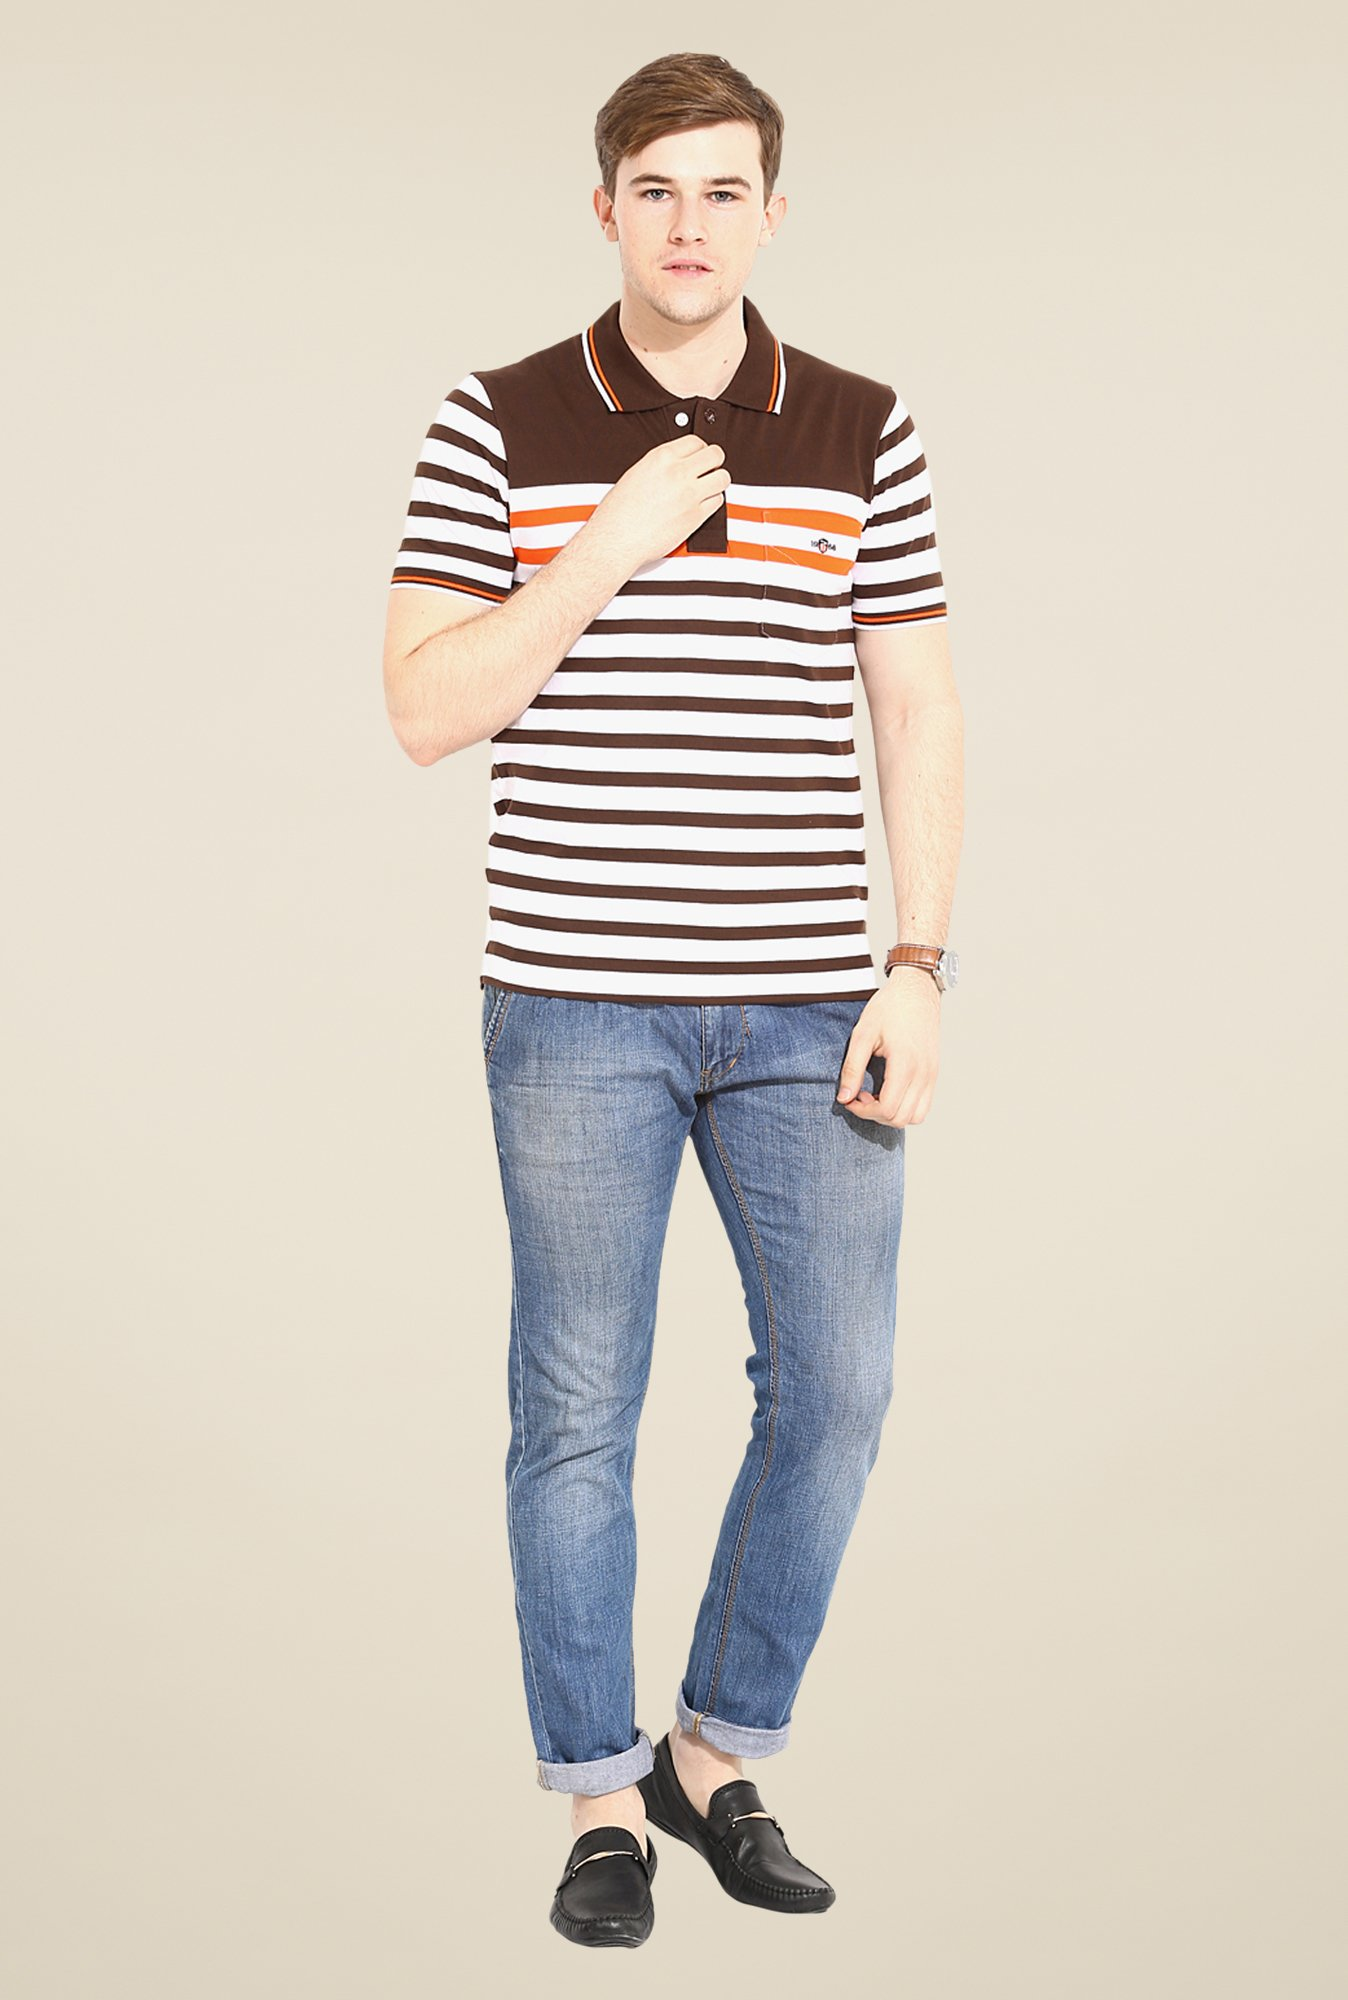 Duke Stardust White & Brown Striped T-shirt